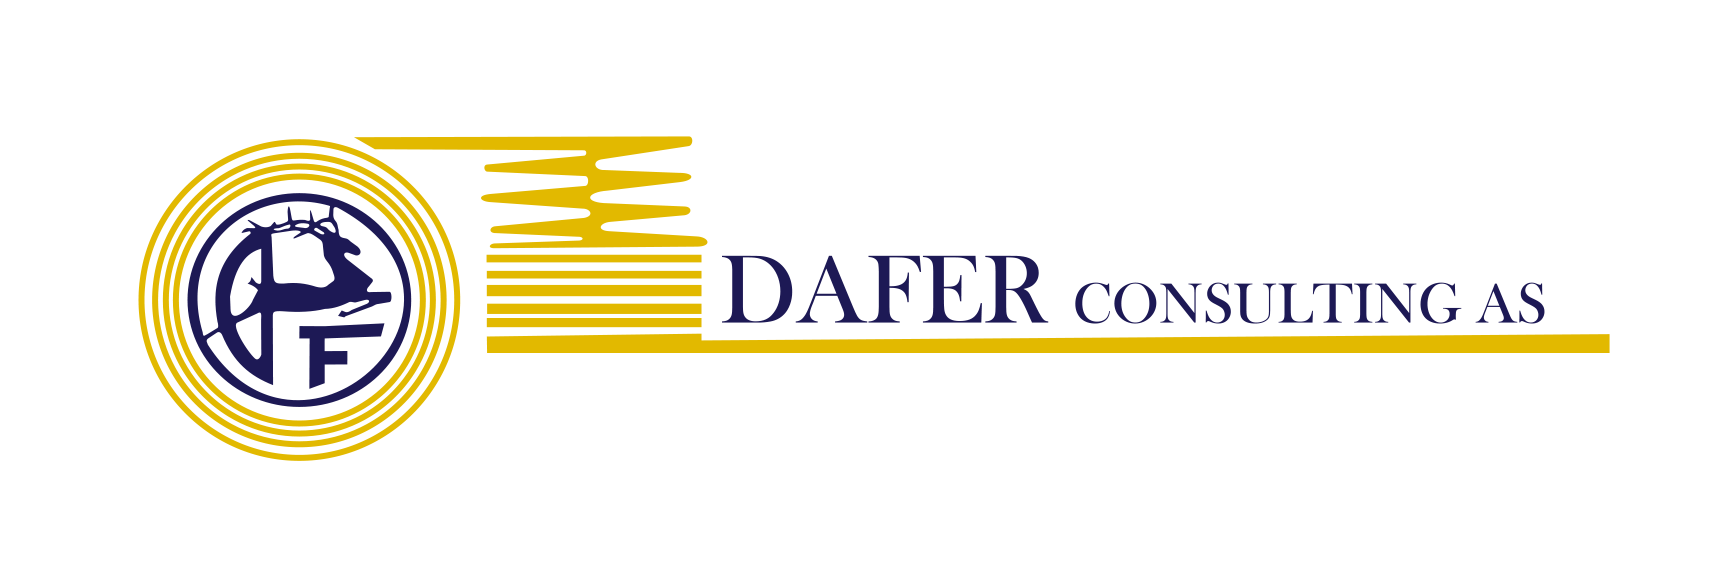 DAFER Consulting